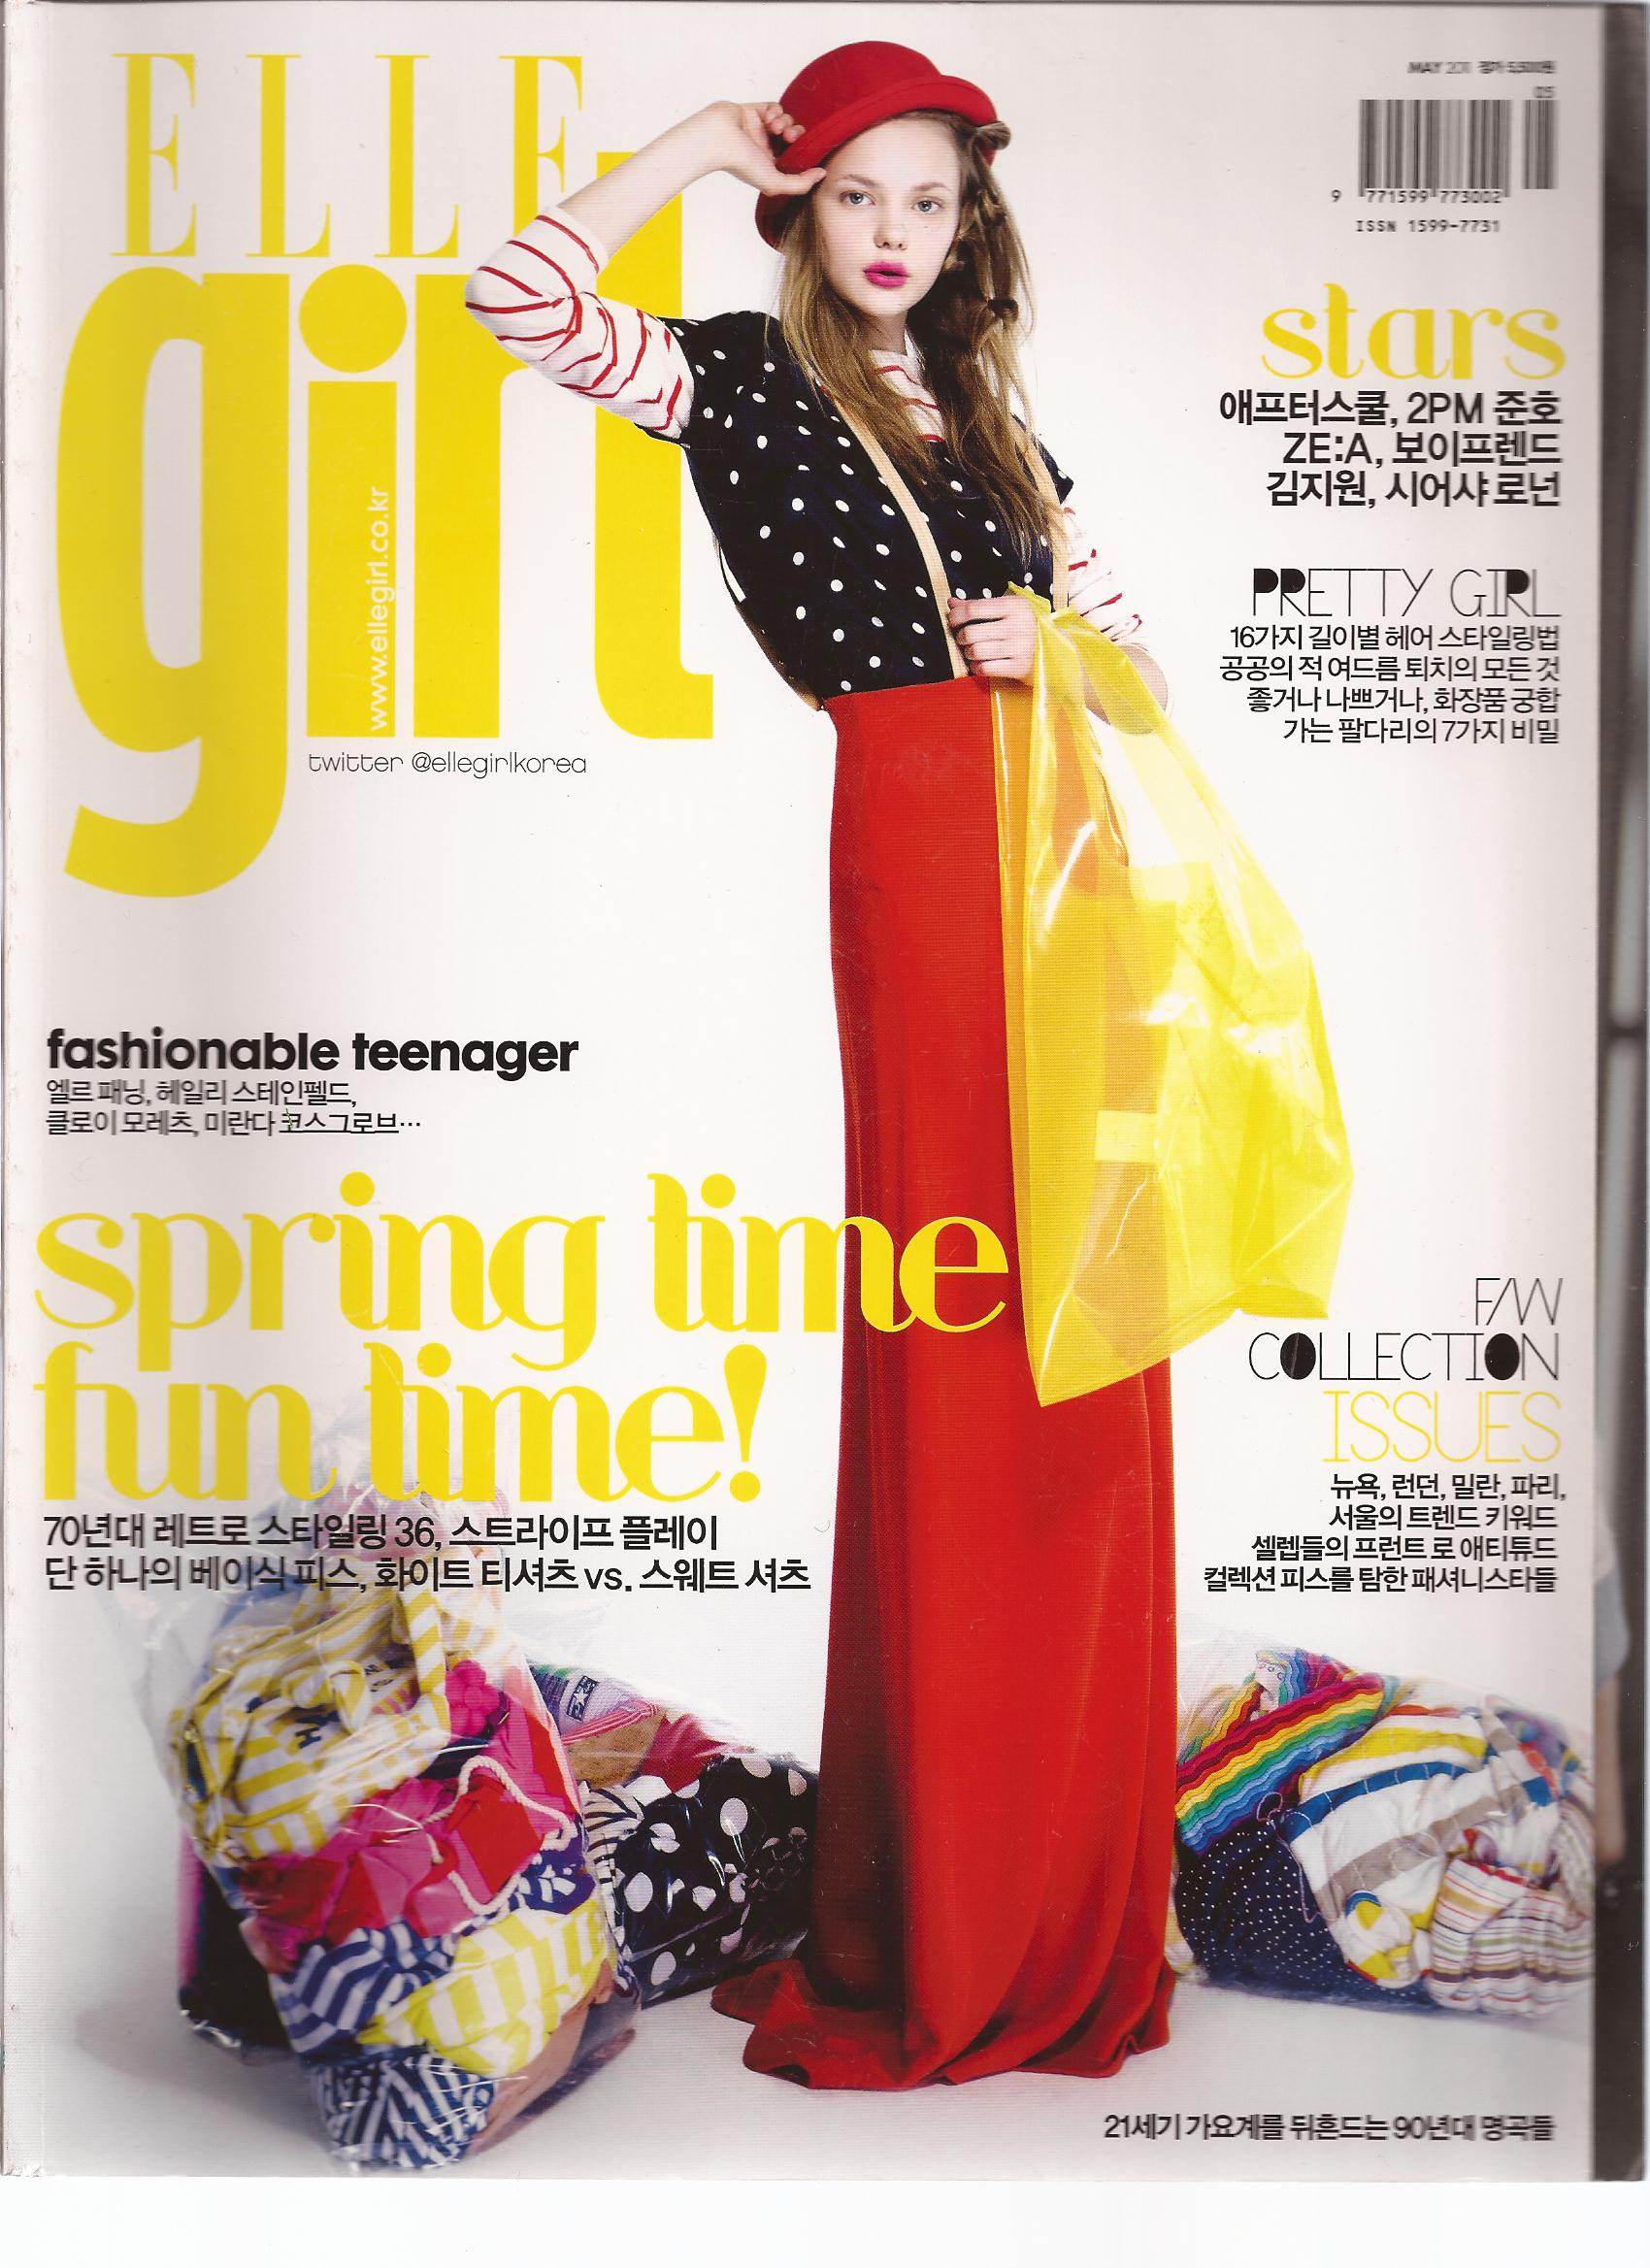 unbounded AWE in  ELLE girl MAGAZINE 2011,5